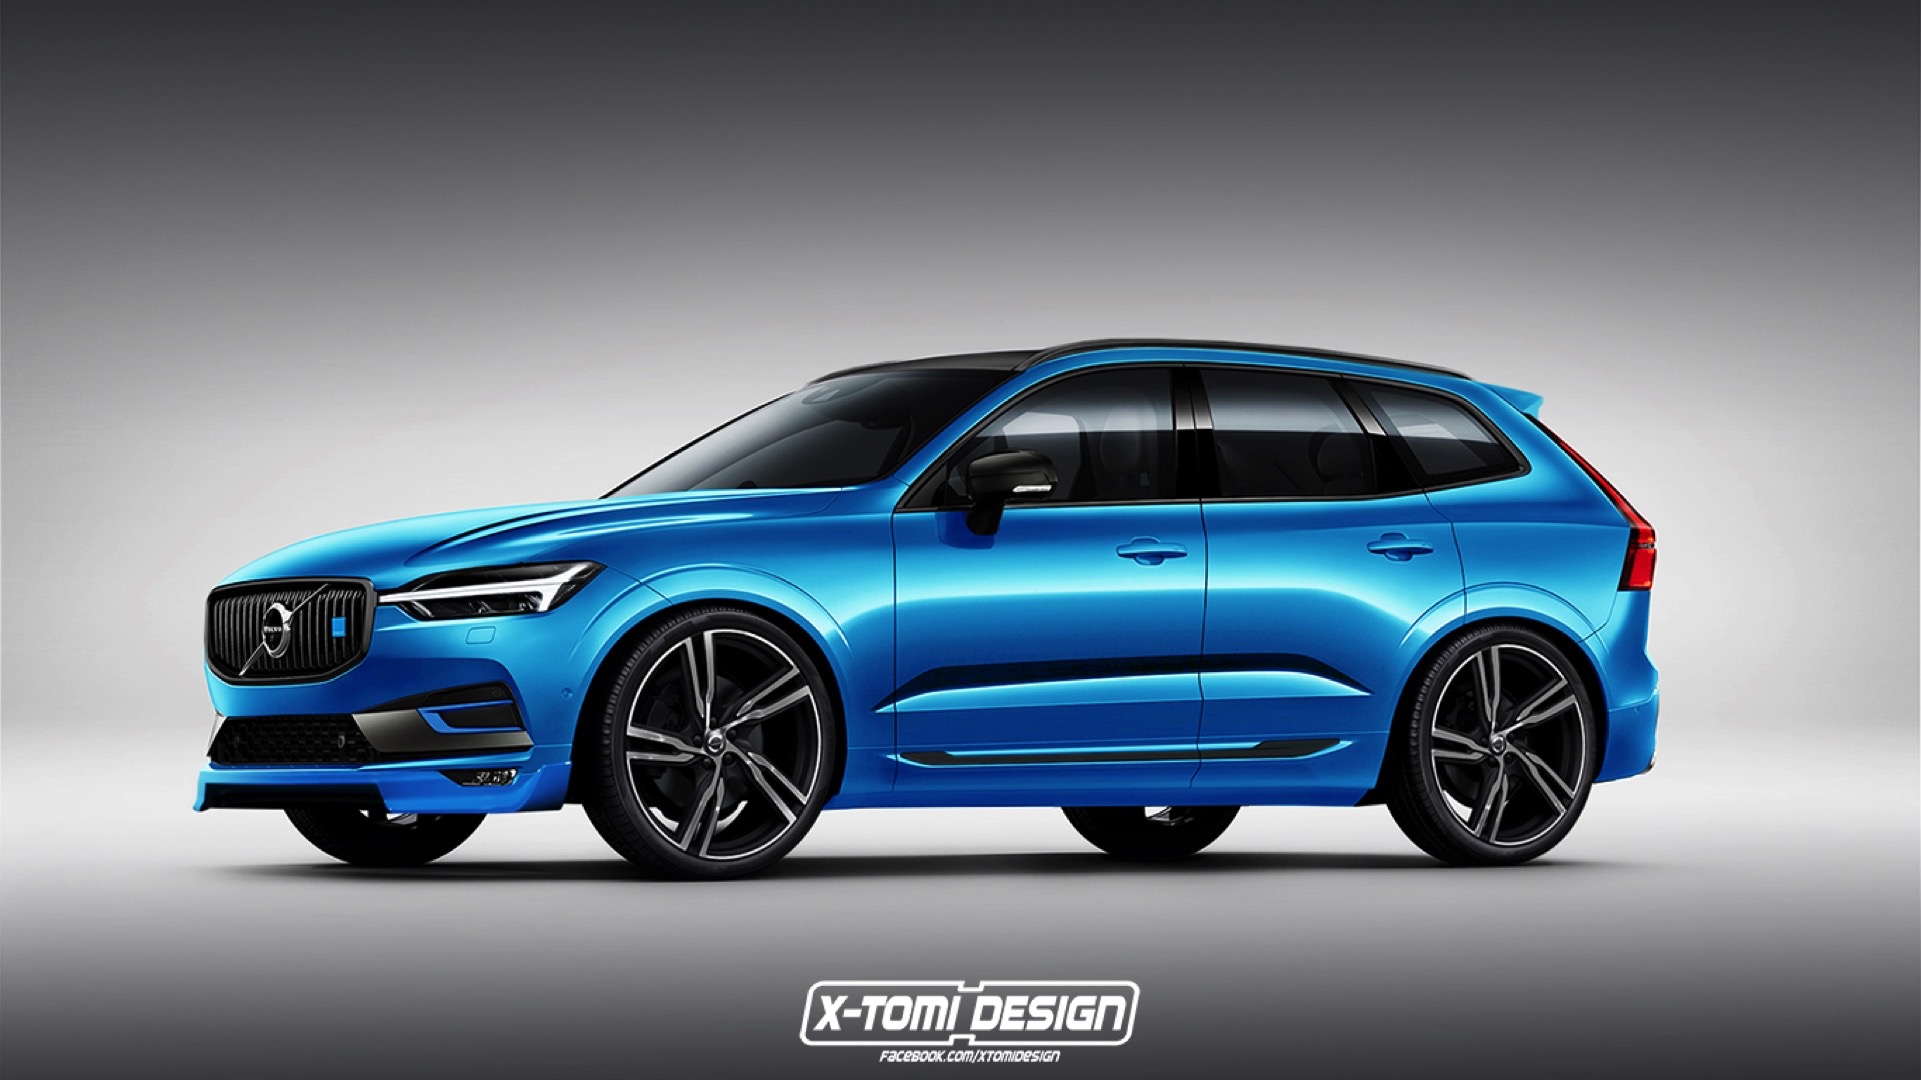 2018 Volvo Xc60 Polestar Digitally Imagined But Will It